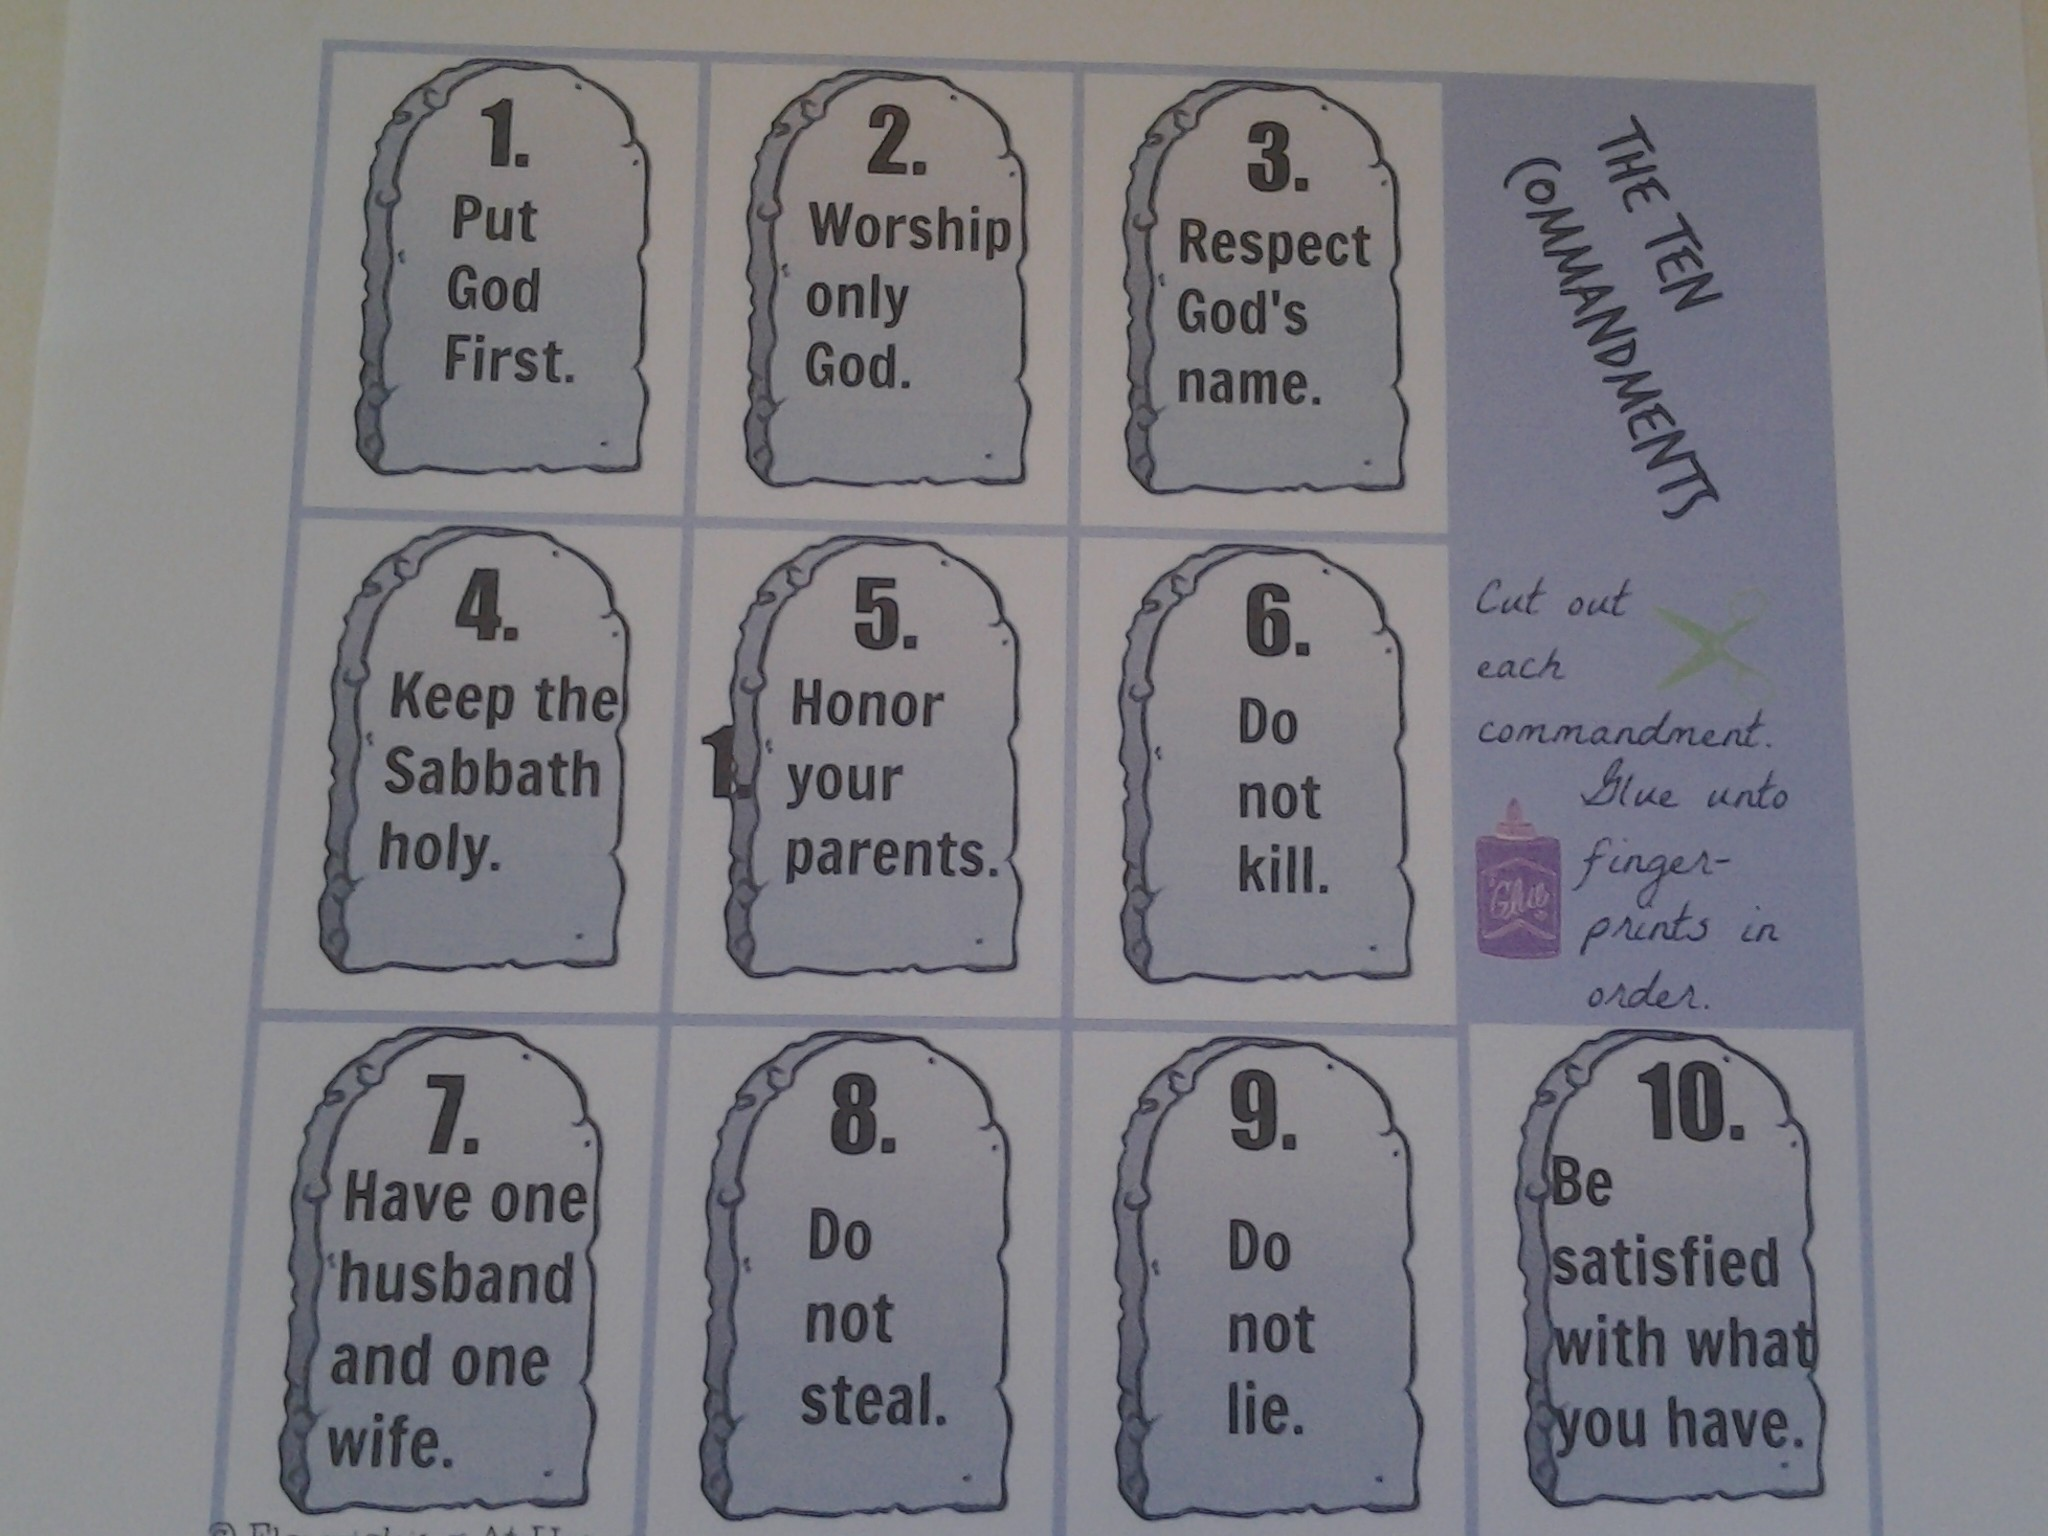 Ten commandments of essay writing